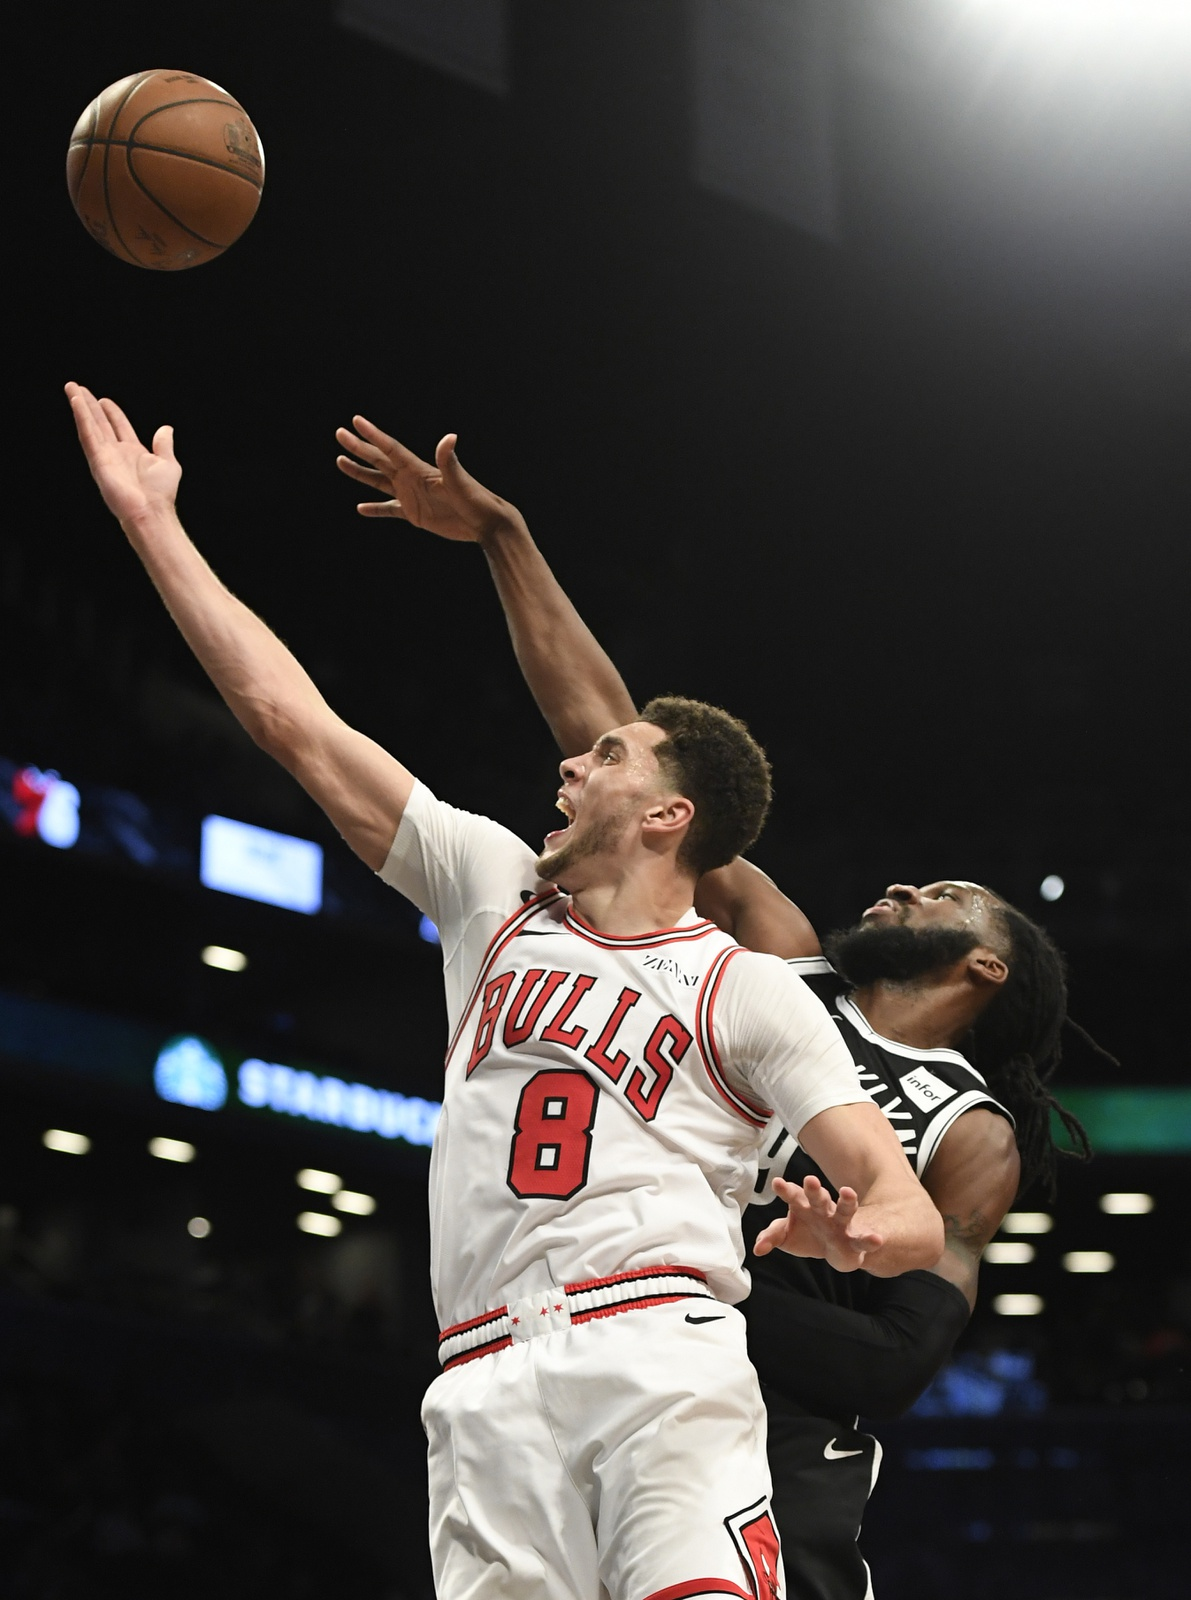 Zach LaVine #8 of the Chicago Bulls attempts a layup during the fourth quarter of the game against the Brooklyn Nets at Barclays Center on January 29, 2019 in the Brooklyn borough of New York City.